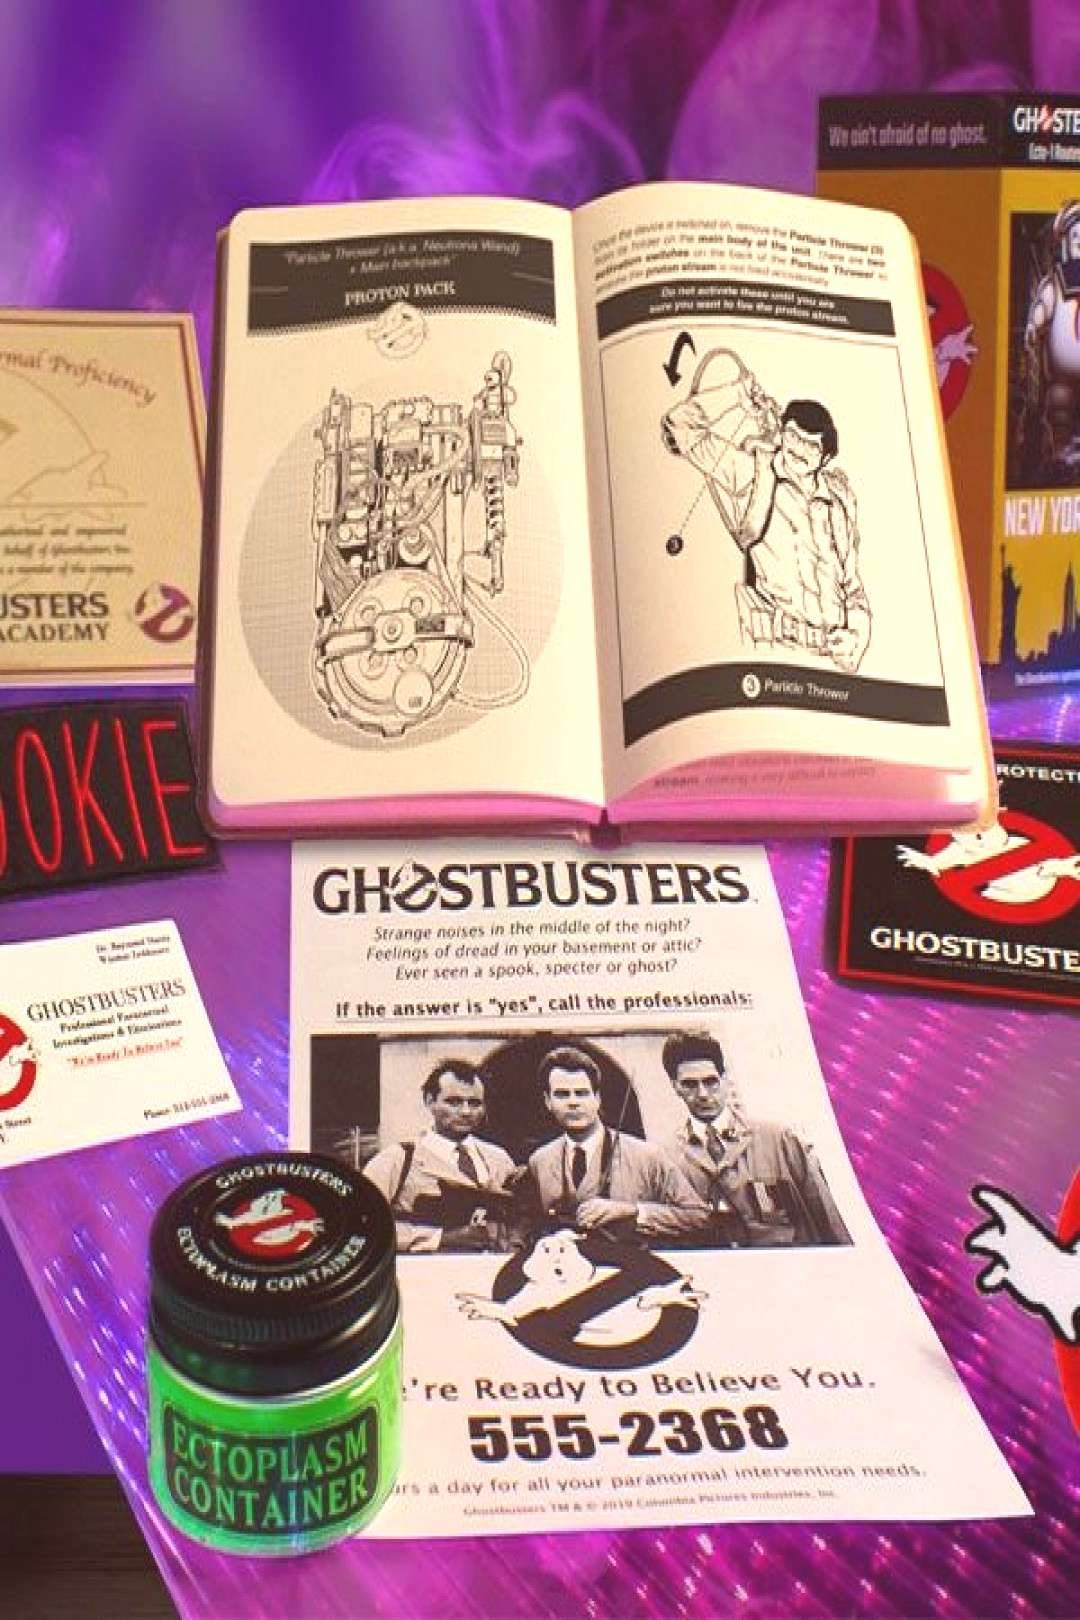 Ghostbusters Employee Welcome Kit Ghostbusters Collectible Set - Licensed, Original, Limited ... Si